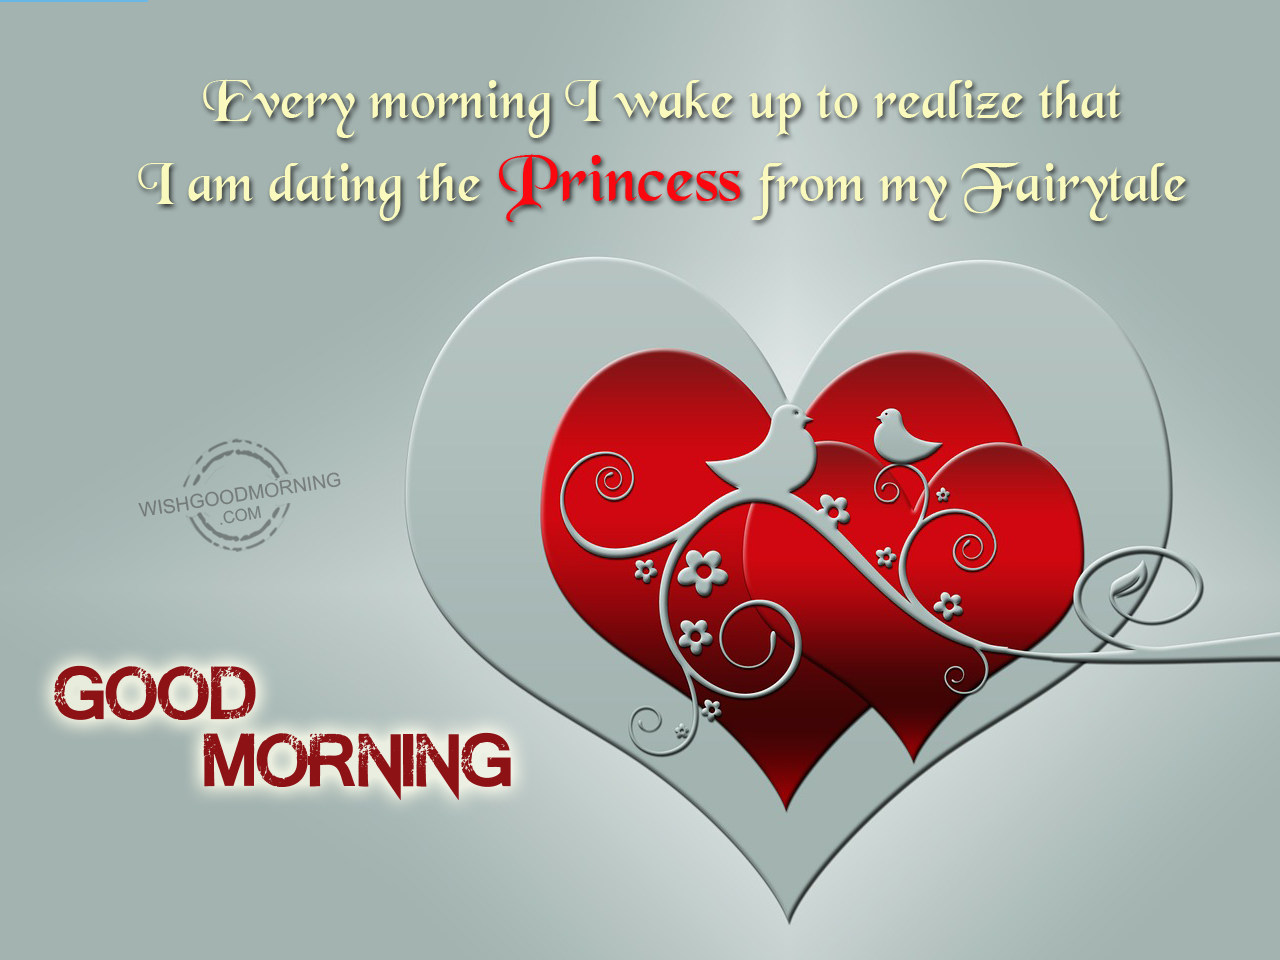 Good Morning Wishes Messages With Beautiful Images For Your Best ...